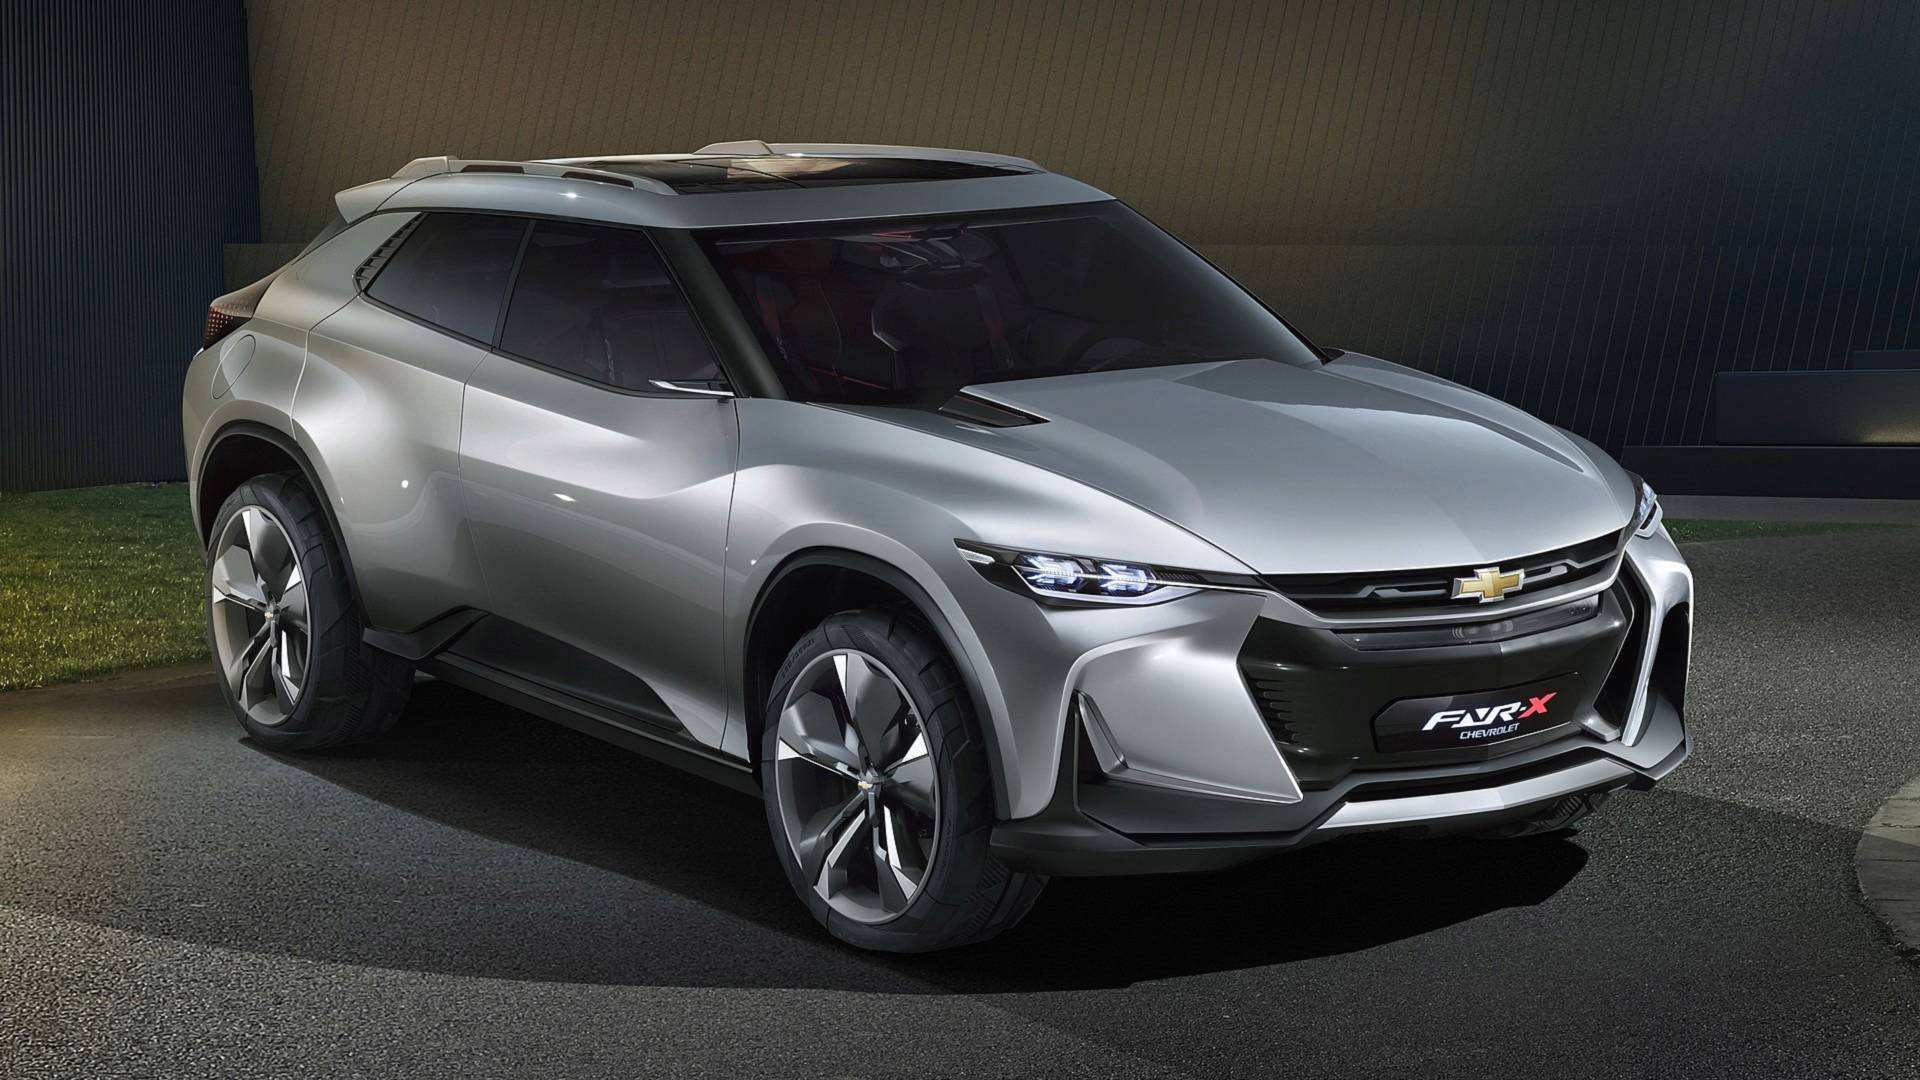 84 The Best Chevrolet Suv 2020 Exterior